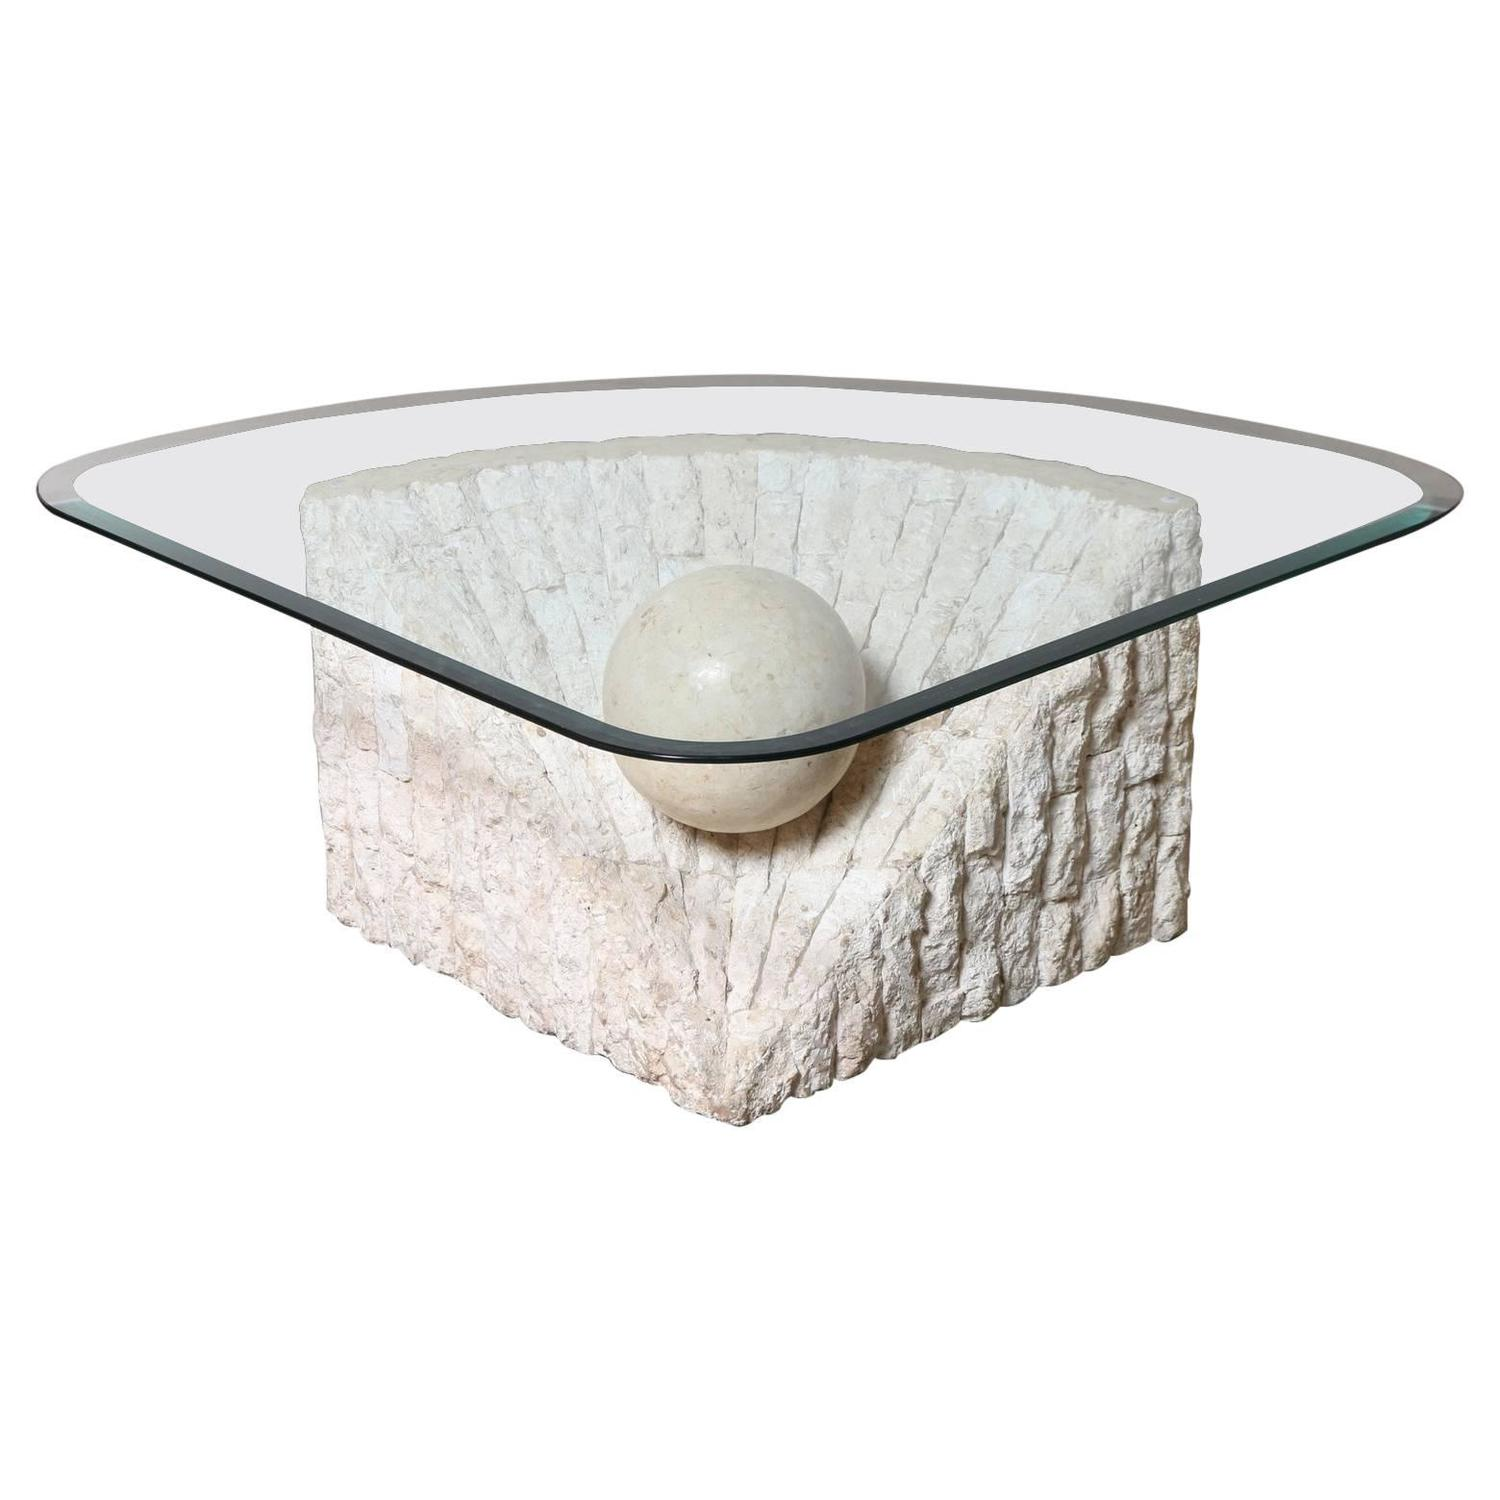 Glass Coffee Table Philippines: Triangular Marble And Travertine Coffee Table With Beveled